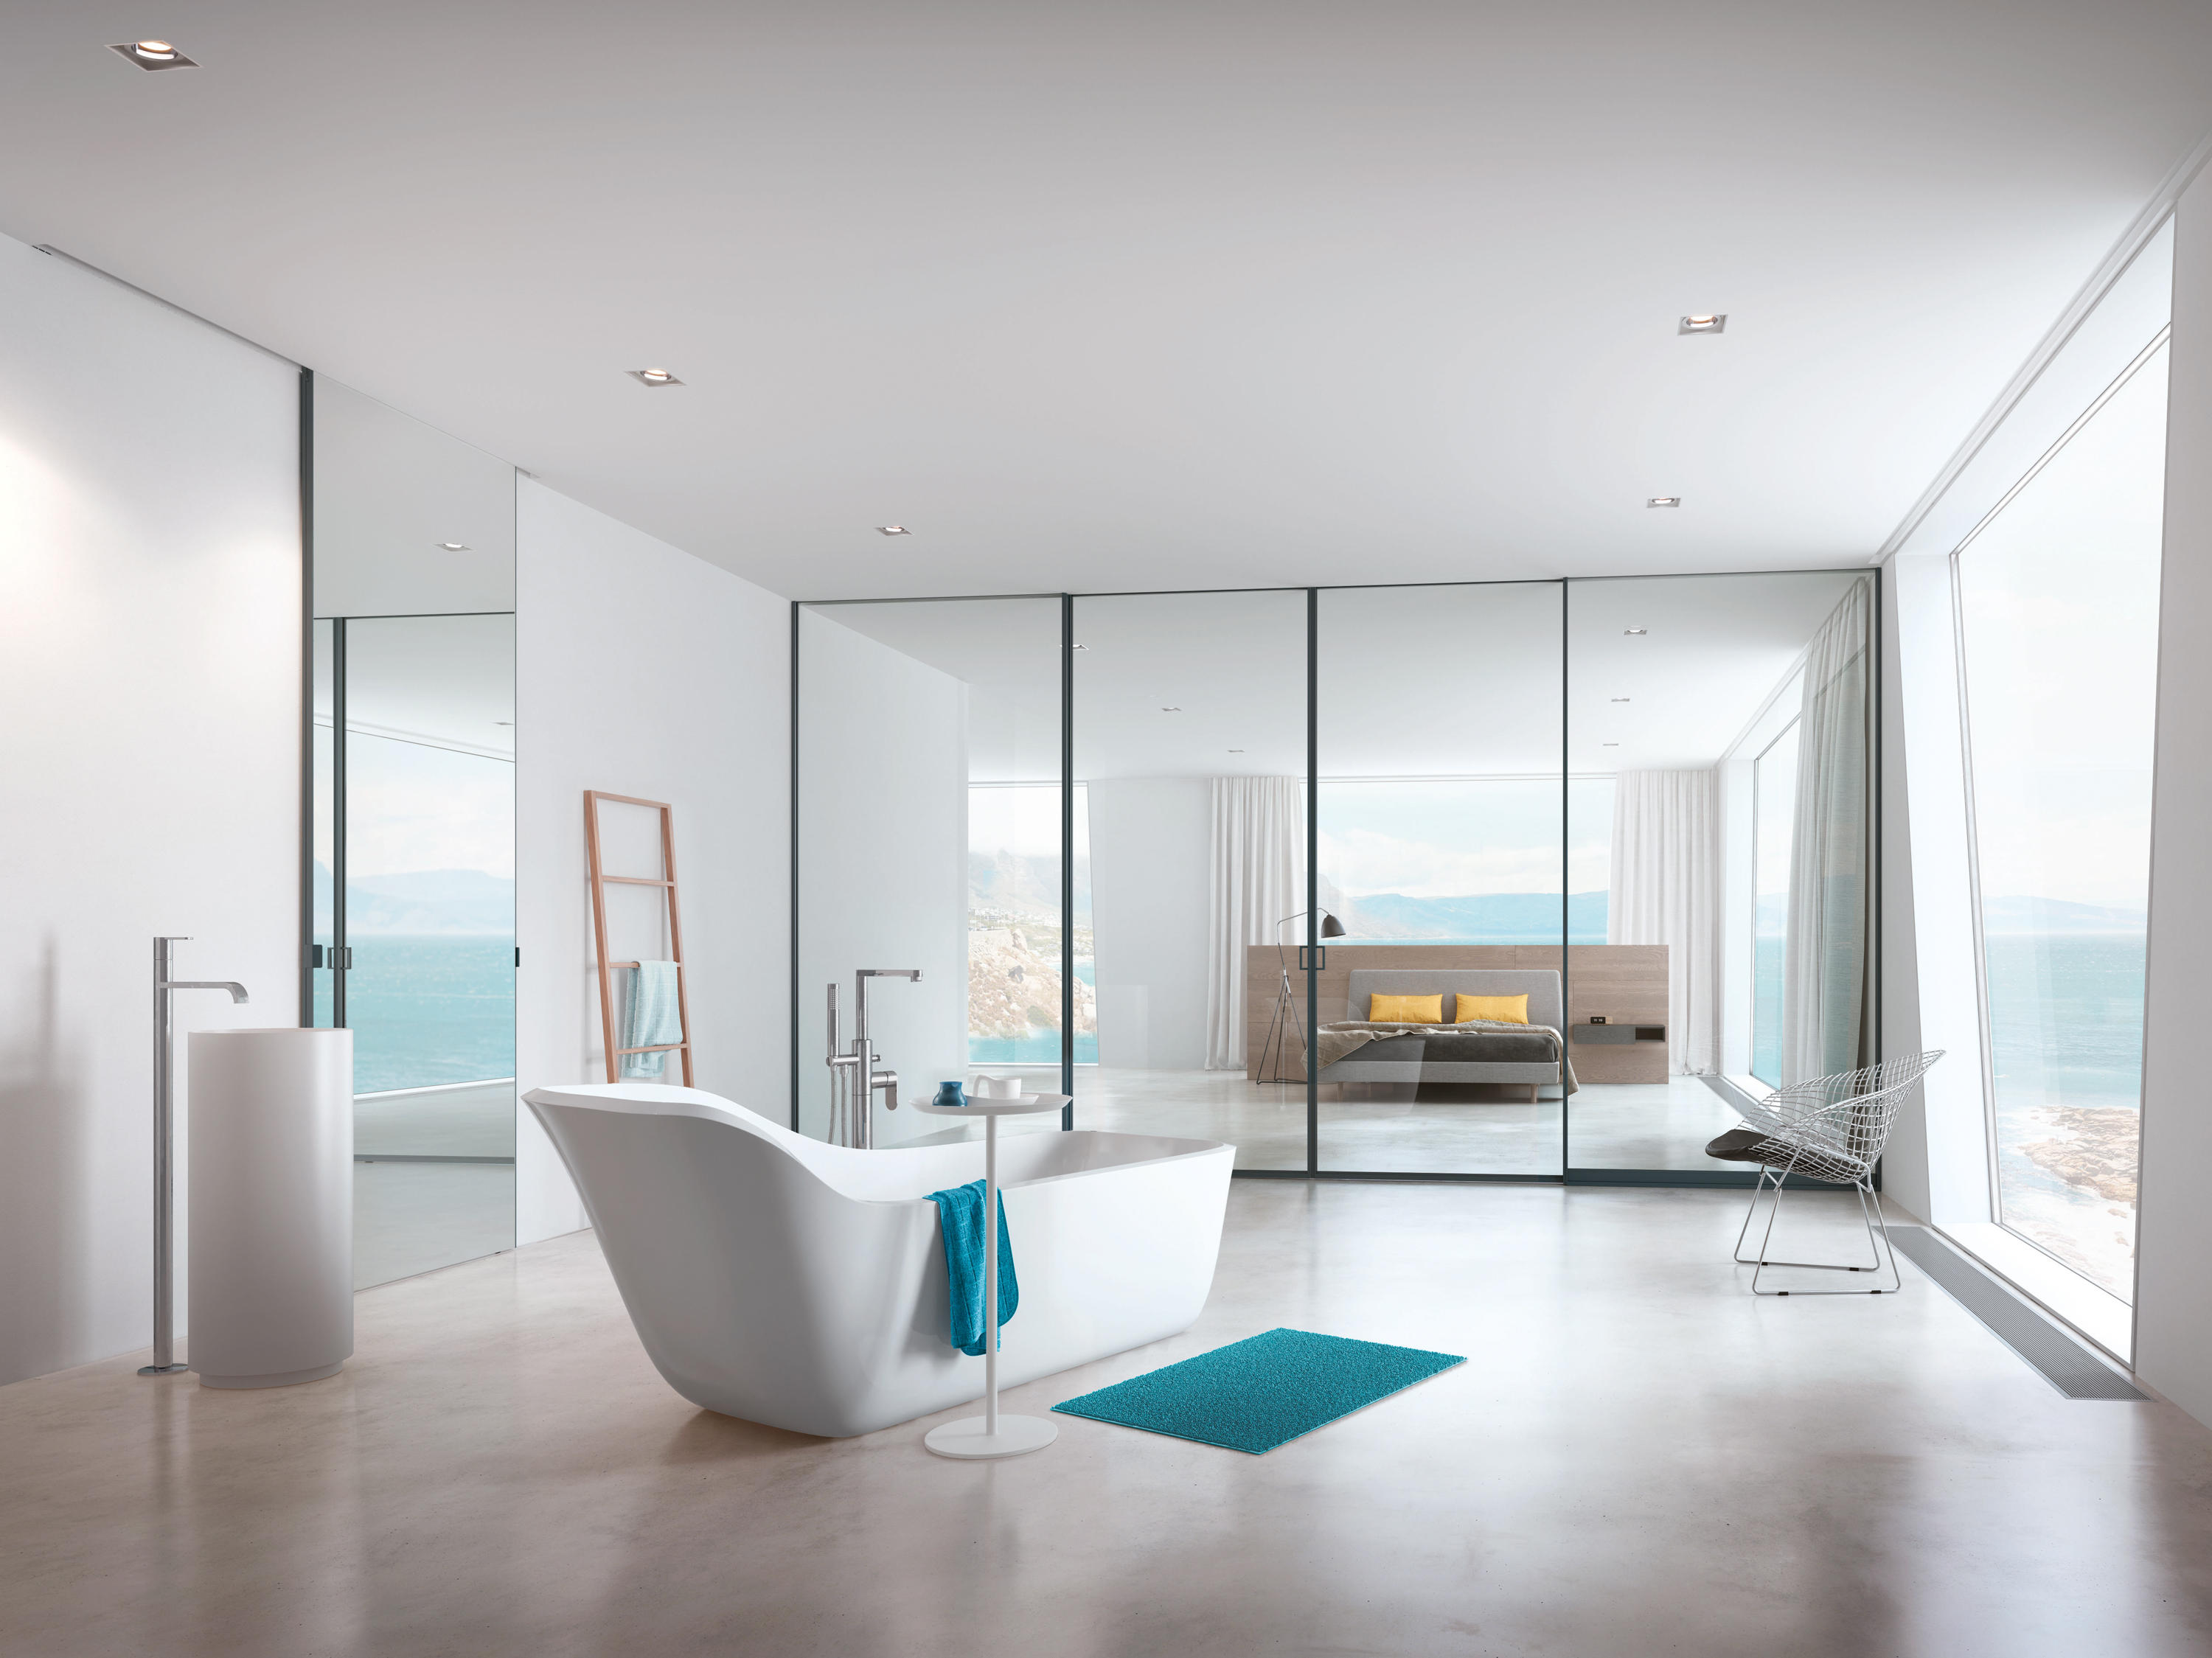 Sliding door s800 - S 1500 Air Syncro Sliding Door System By Raumplus Partitions